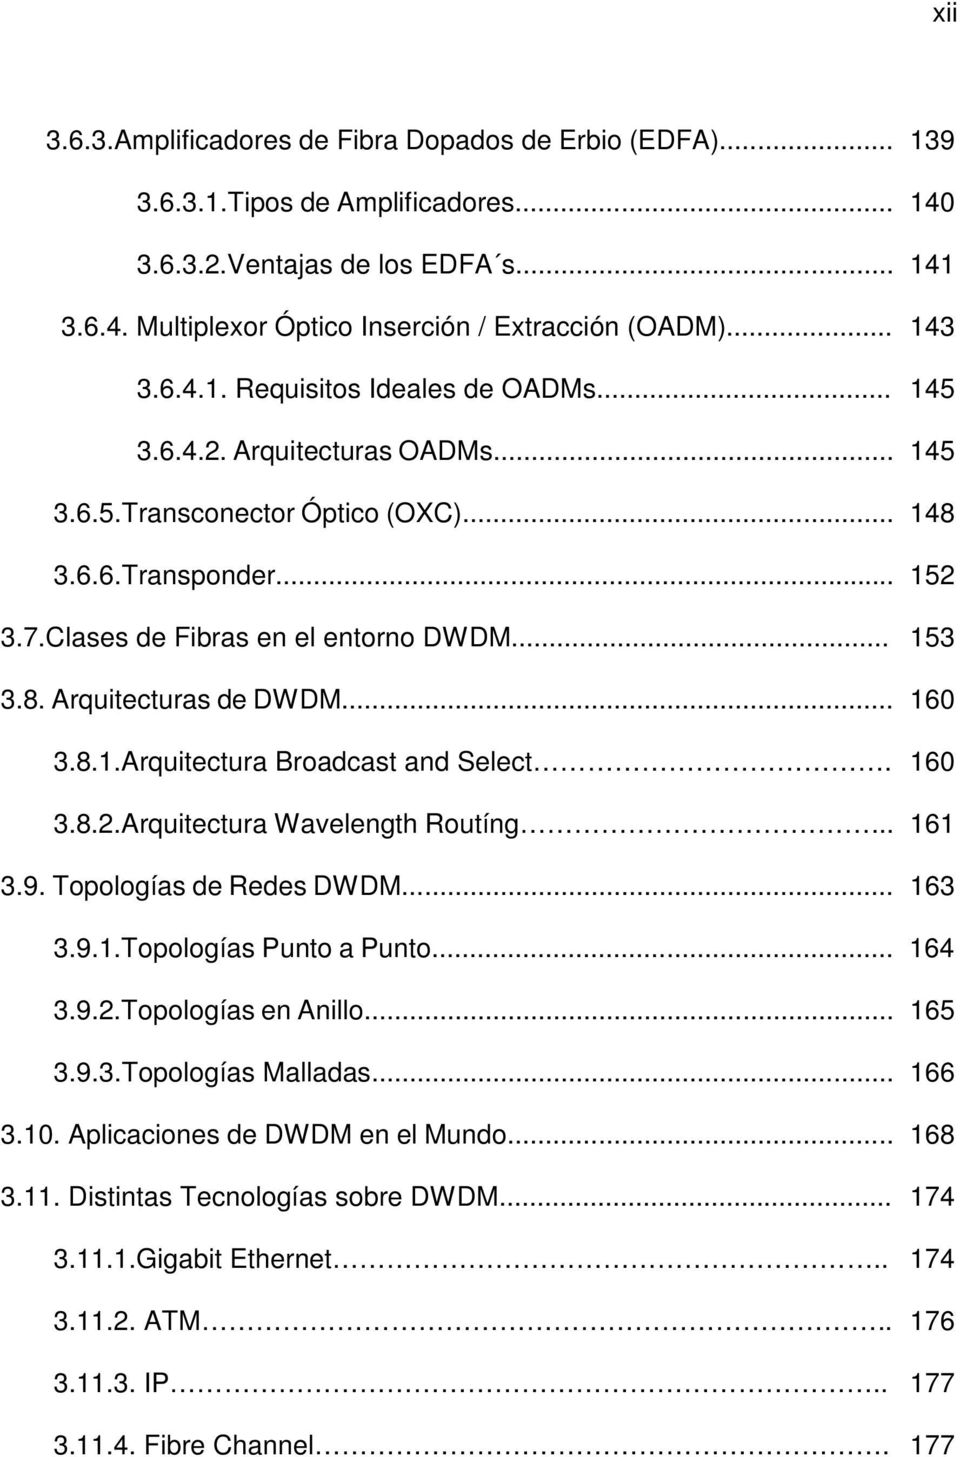 8. Arquitecturas de DWDM... 160 3.8.1.Arquitectura Broadcast and Select. 160 3.8.2.Arquitectura Wavelength Routíng... 161 3.9. Topologías de Redes DWDM... 163 3.9.1.Topologías Punto a Punto... 164 3.